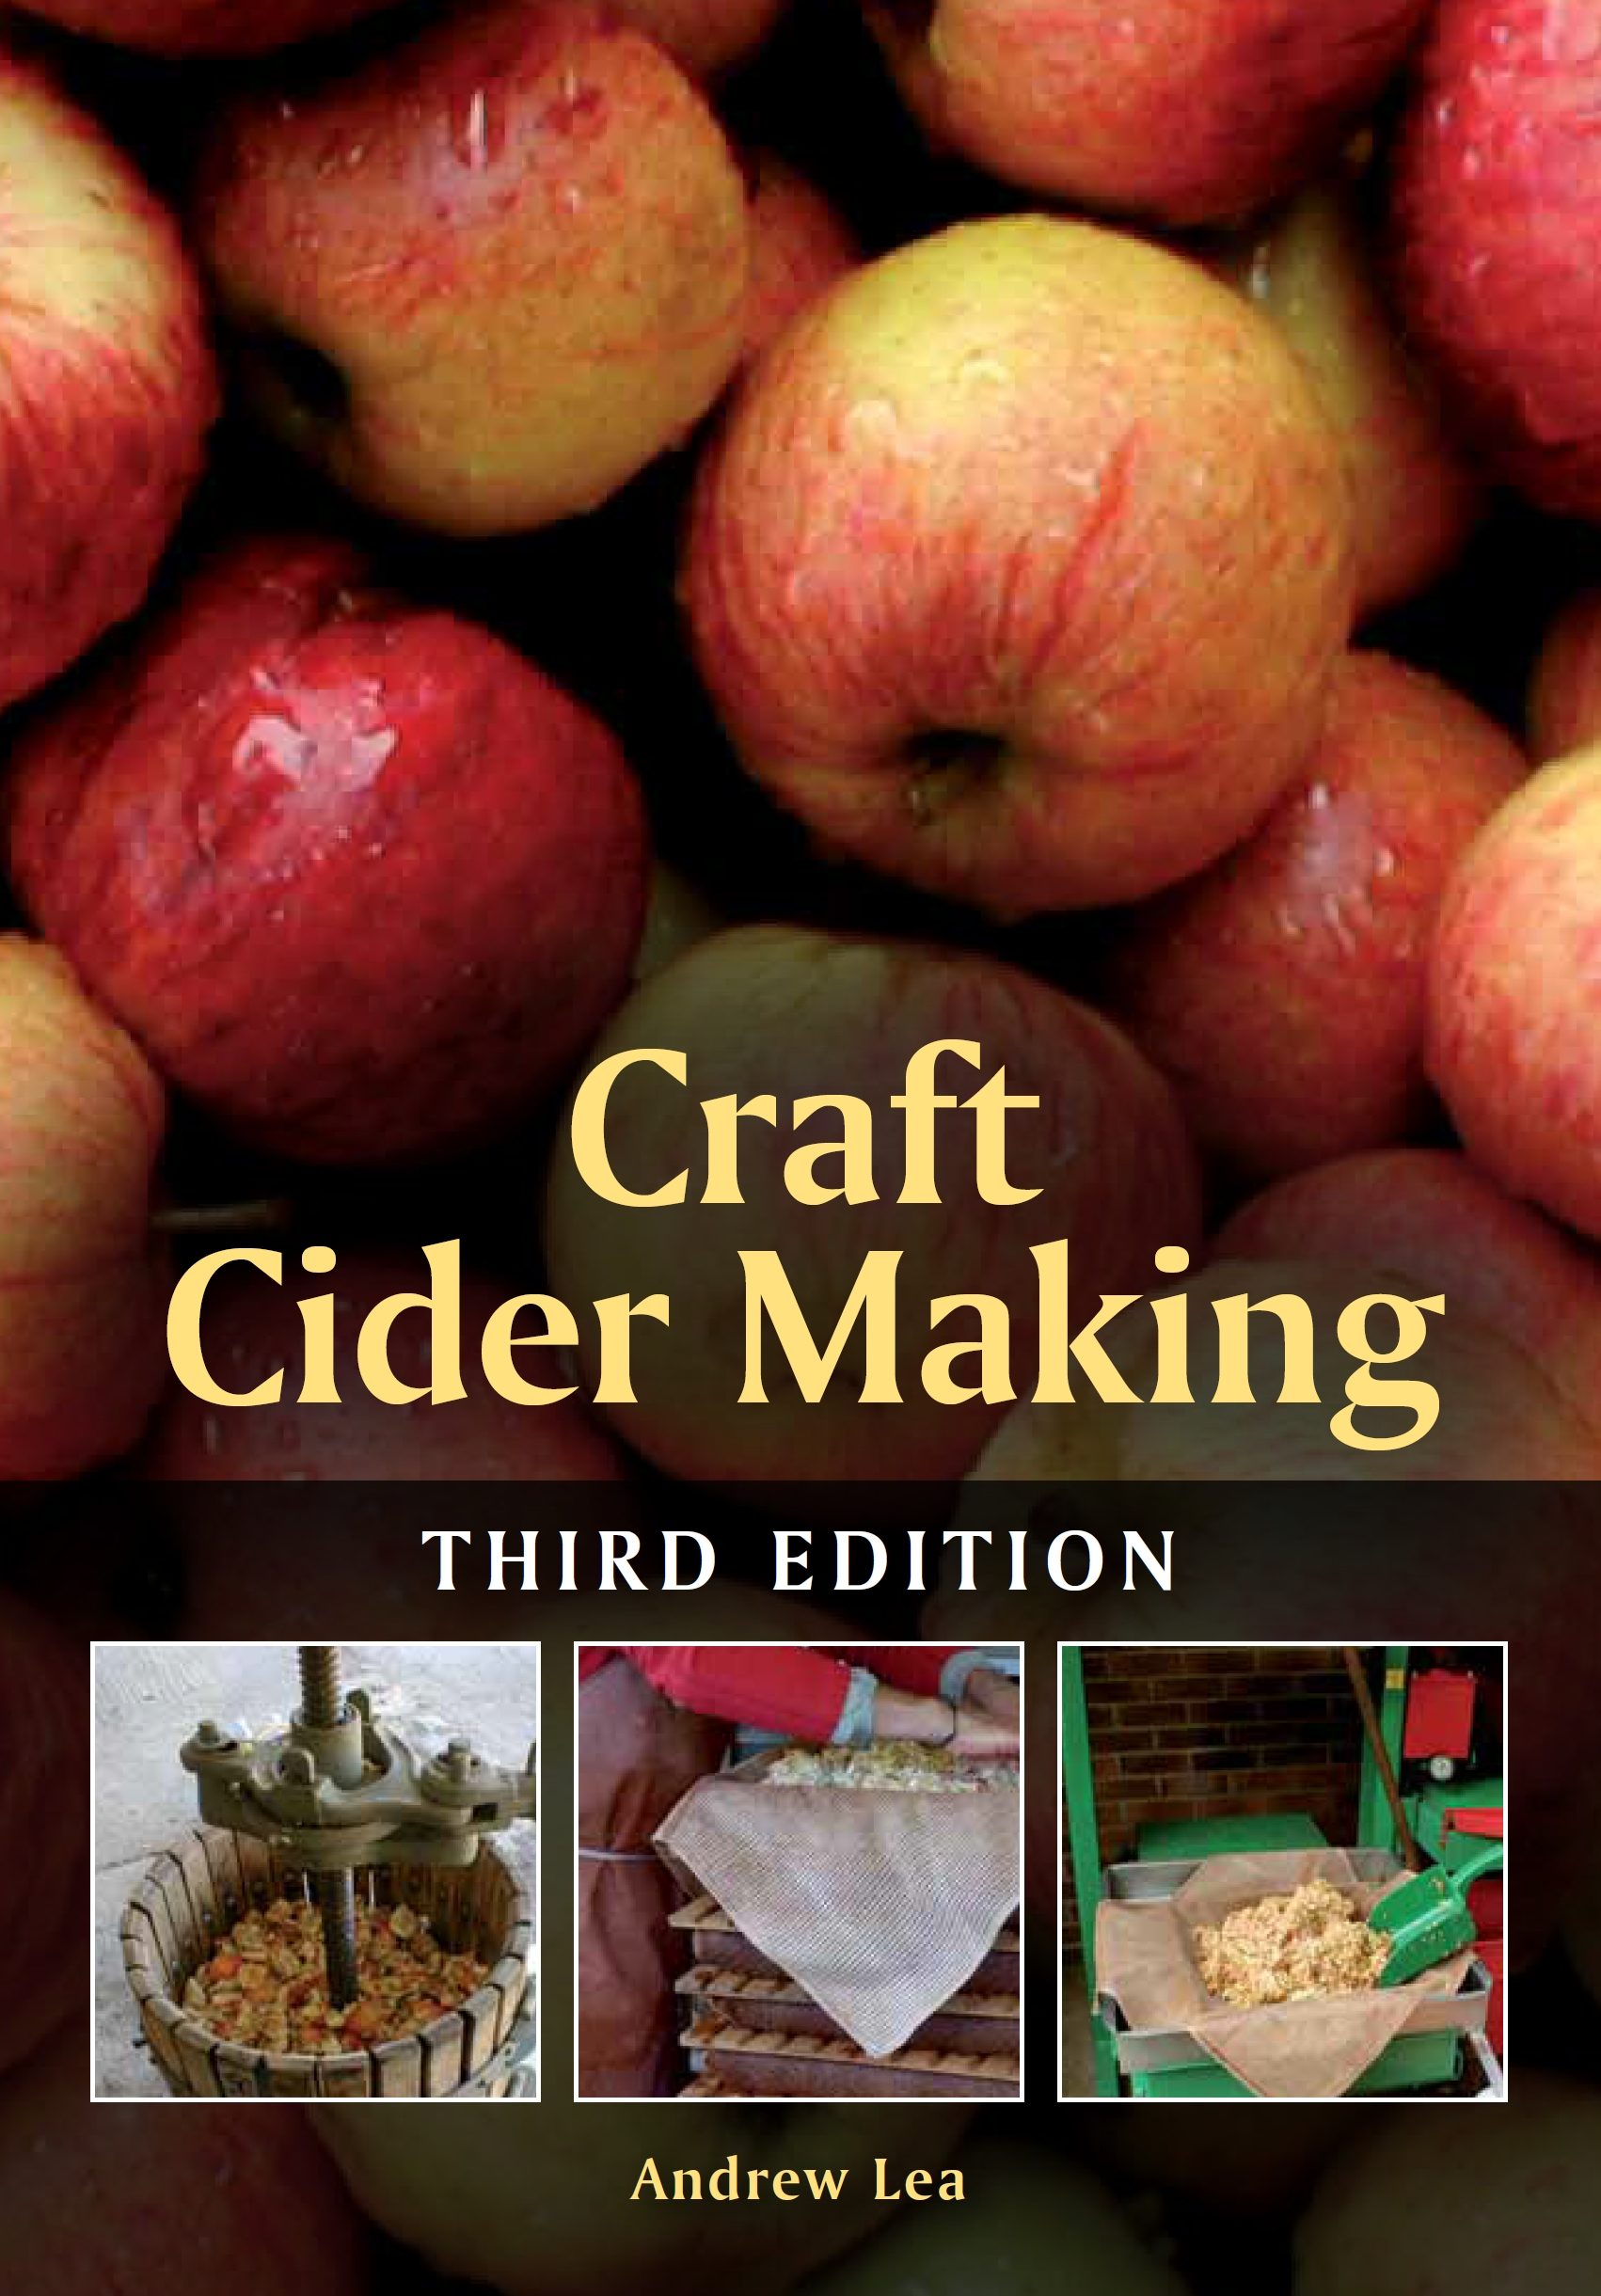 Craft Cider Making Third Edition